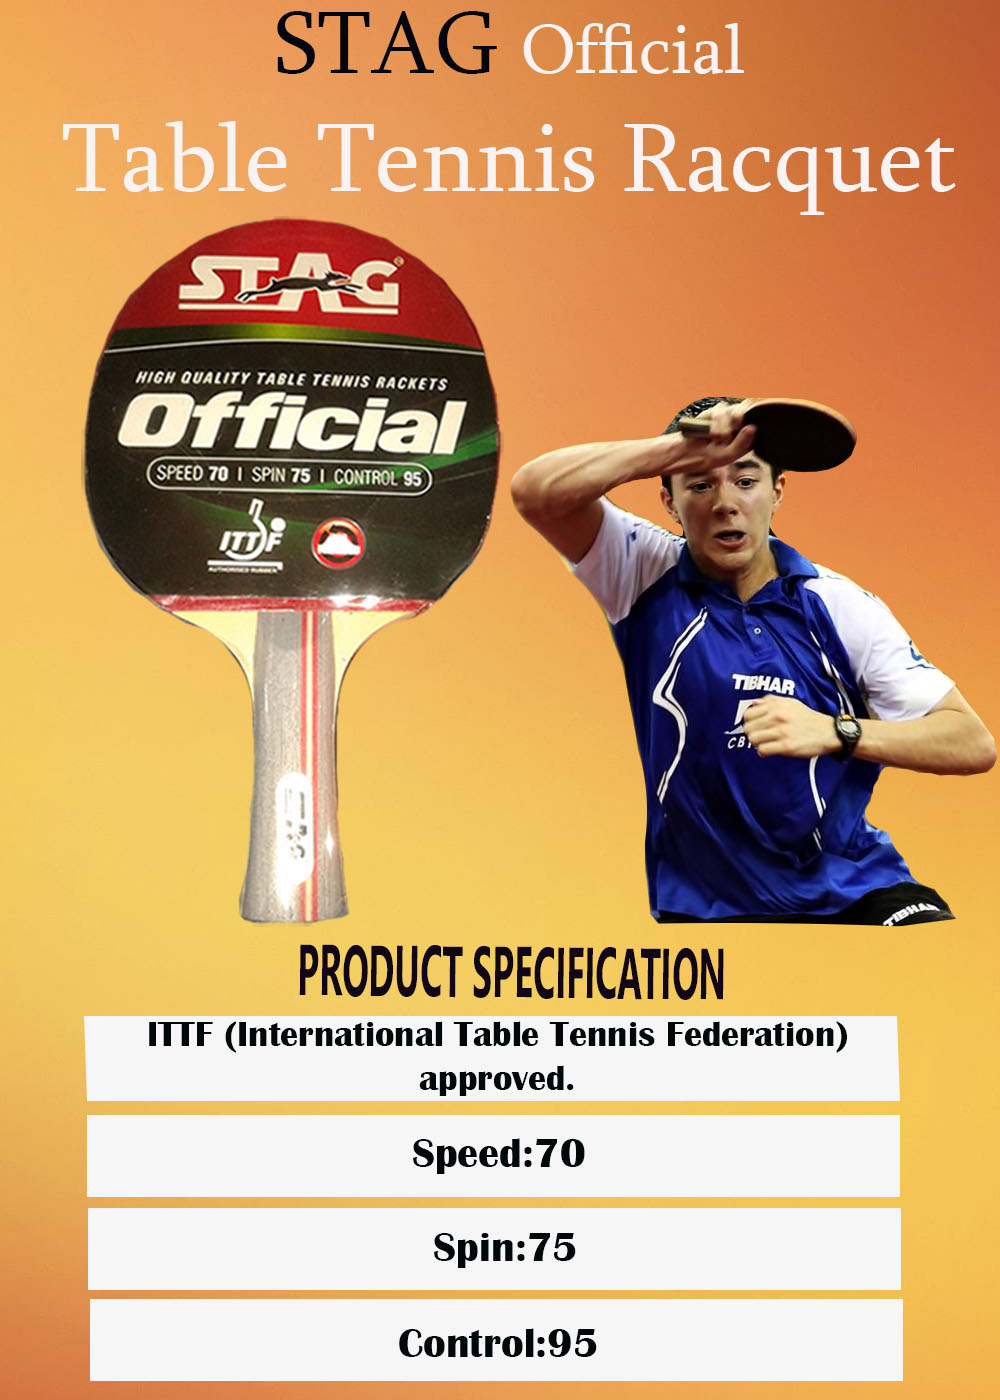 Stag Official Table Tennis Racquet